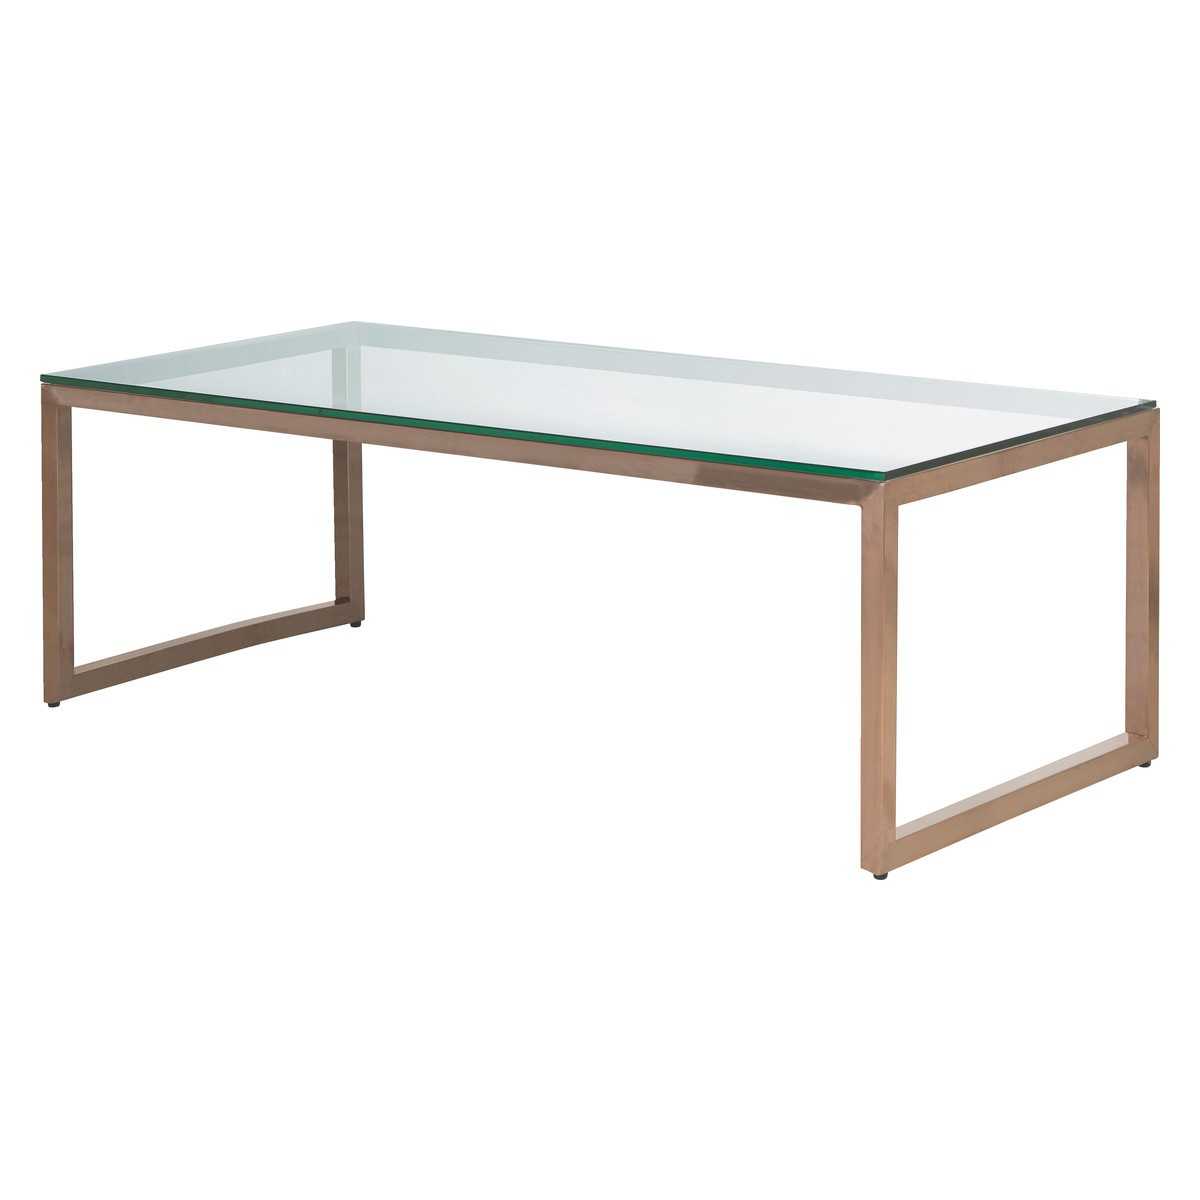 Buy Now At Habitat Uk Pertaining To Rectangular Brass Finish And Glass Coffee Tables (Gallery 10 of 20)